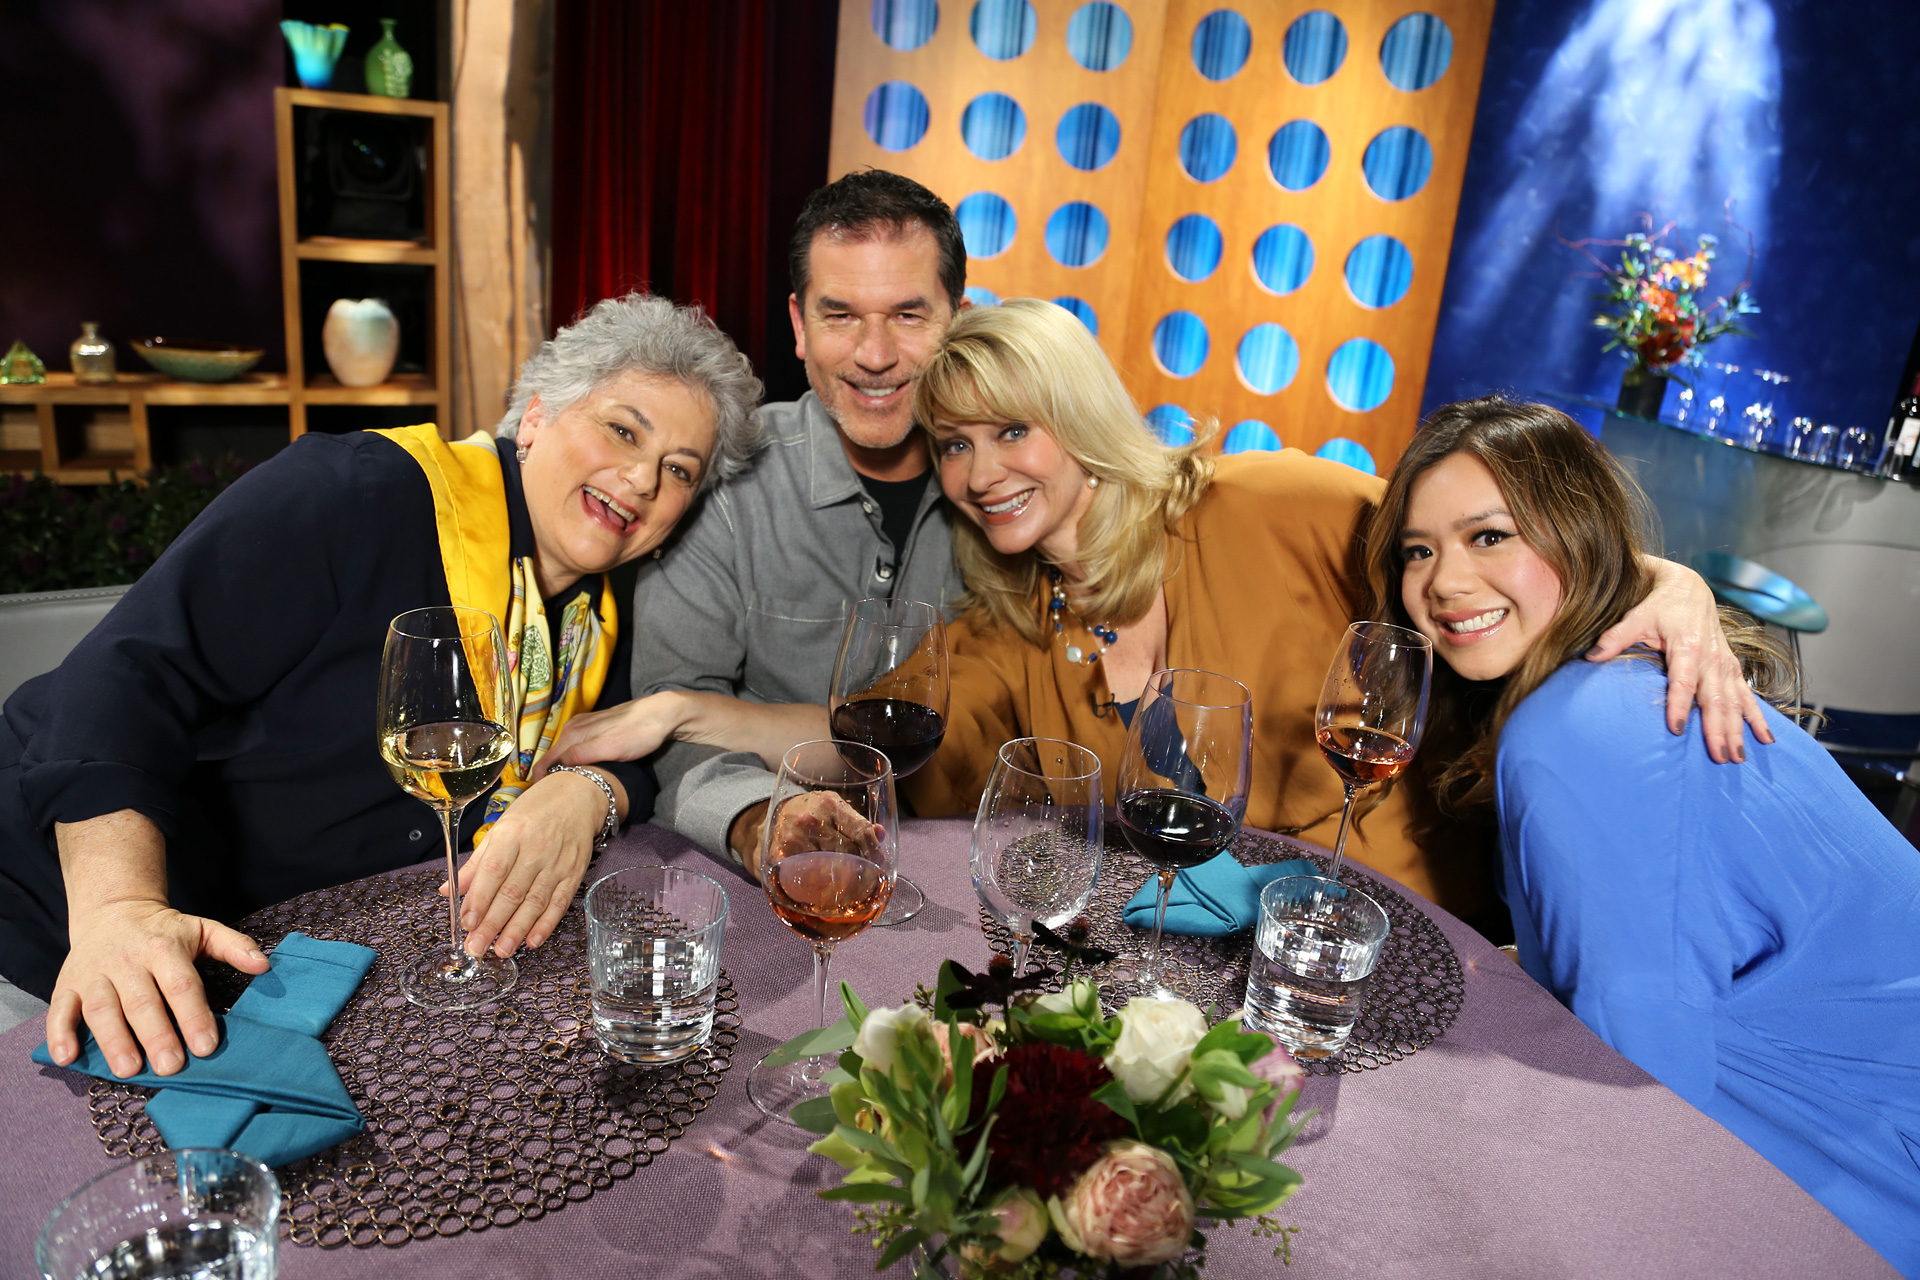 Host Leslie Sbrocco and guests having fun on the set of season 12 episode 8.